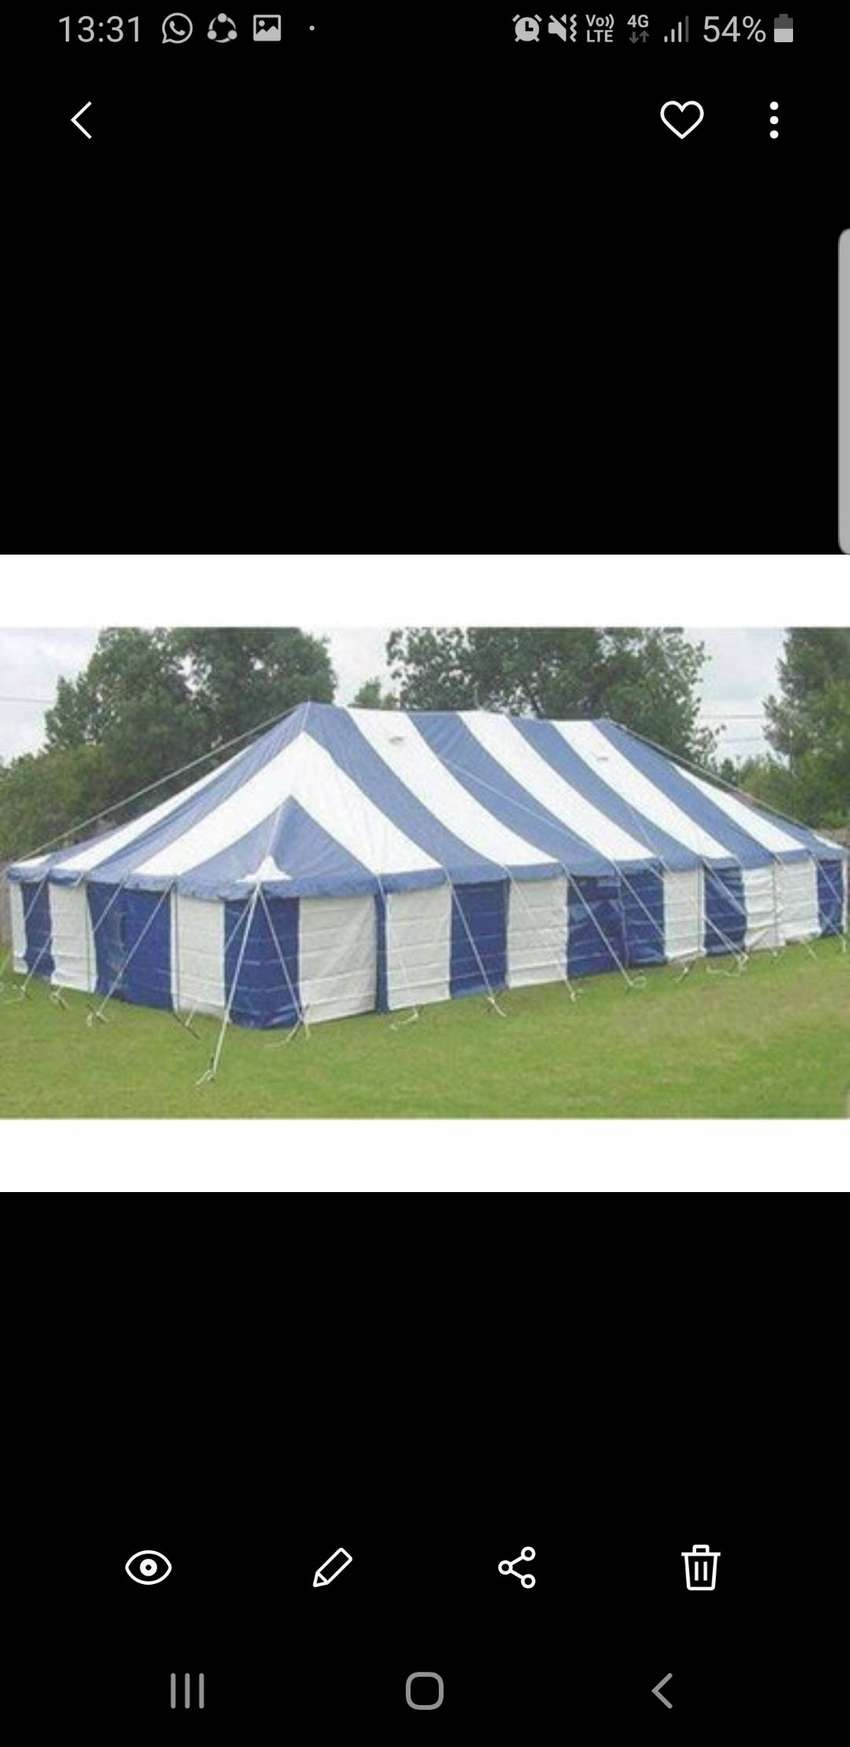 Tents for hire 0